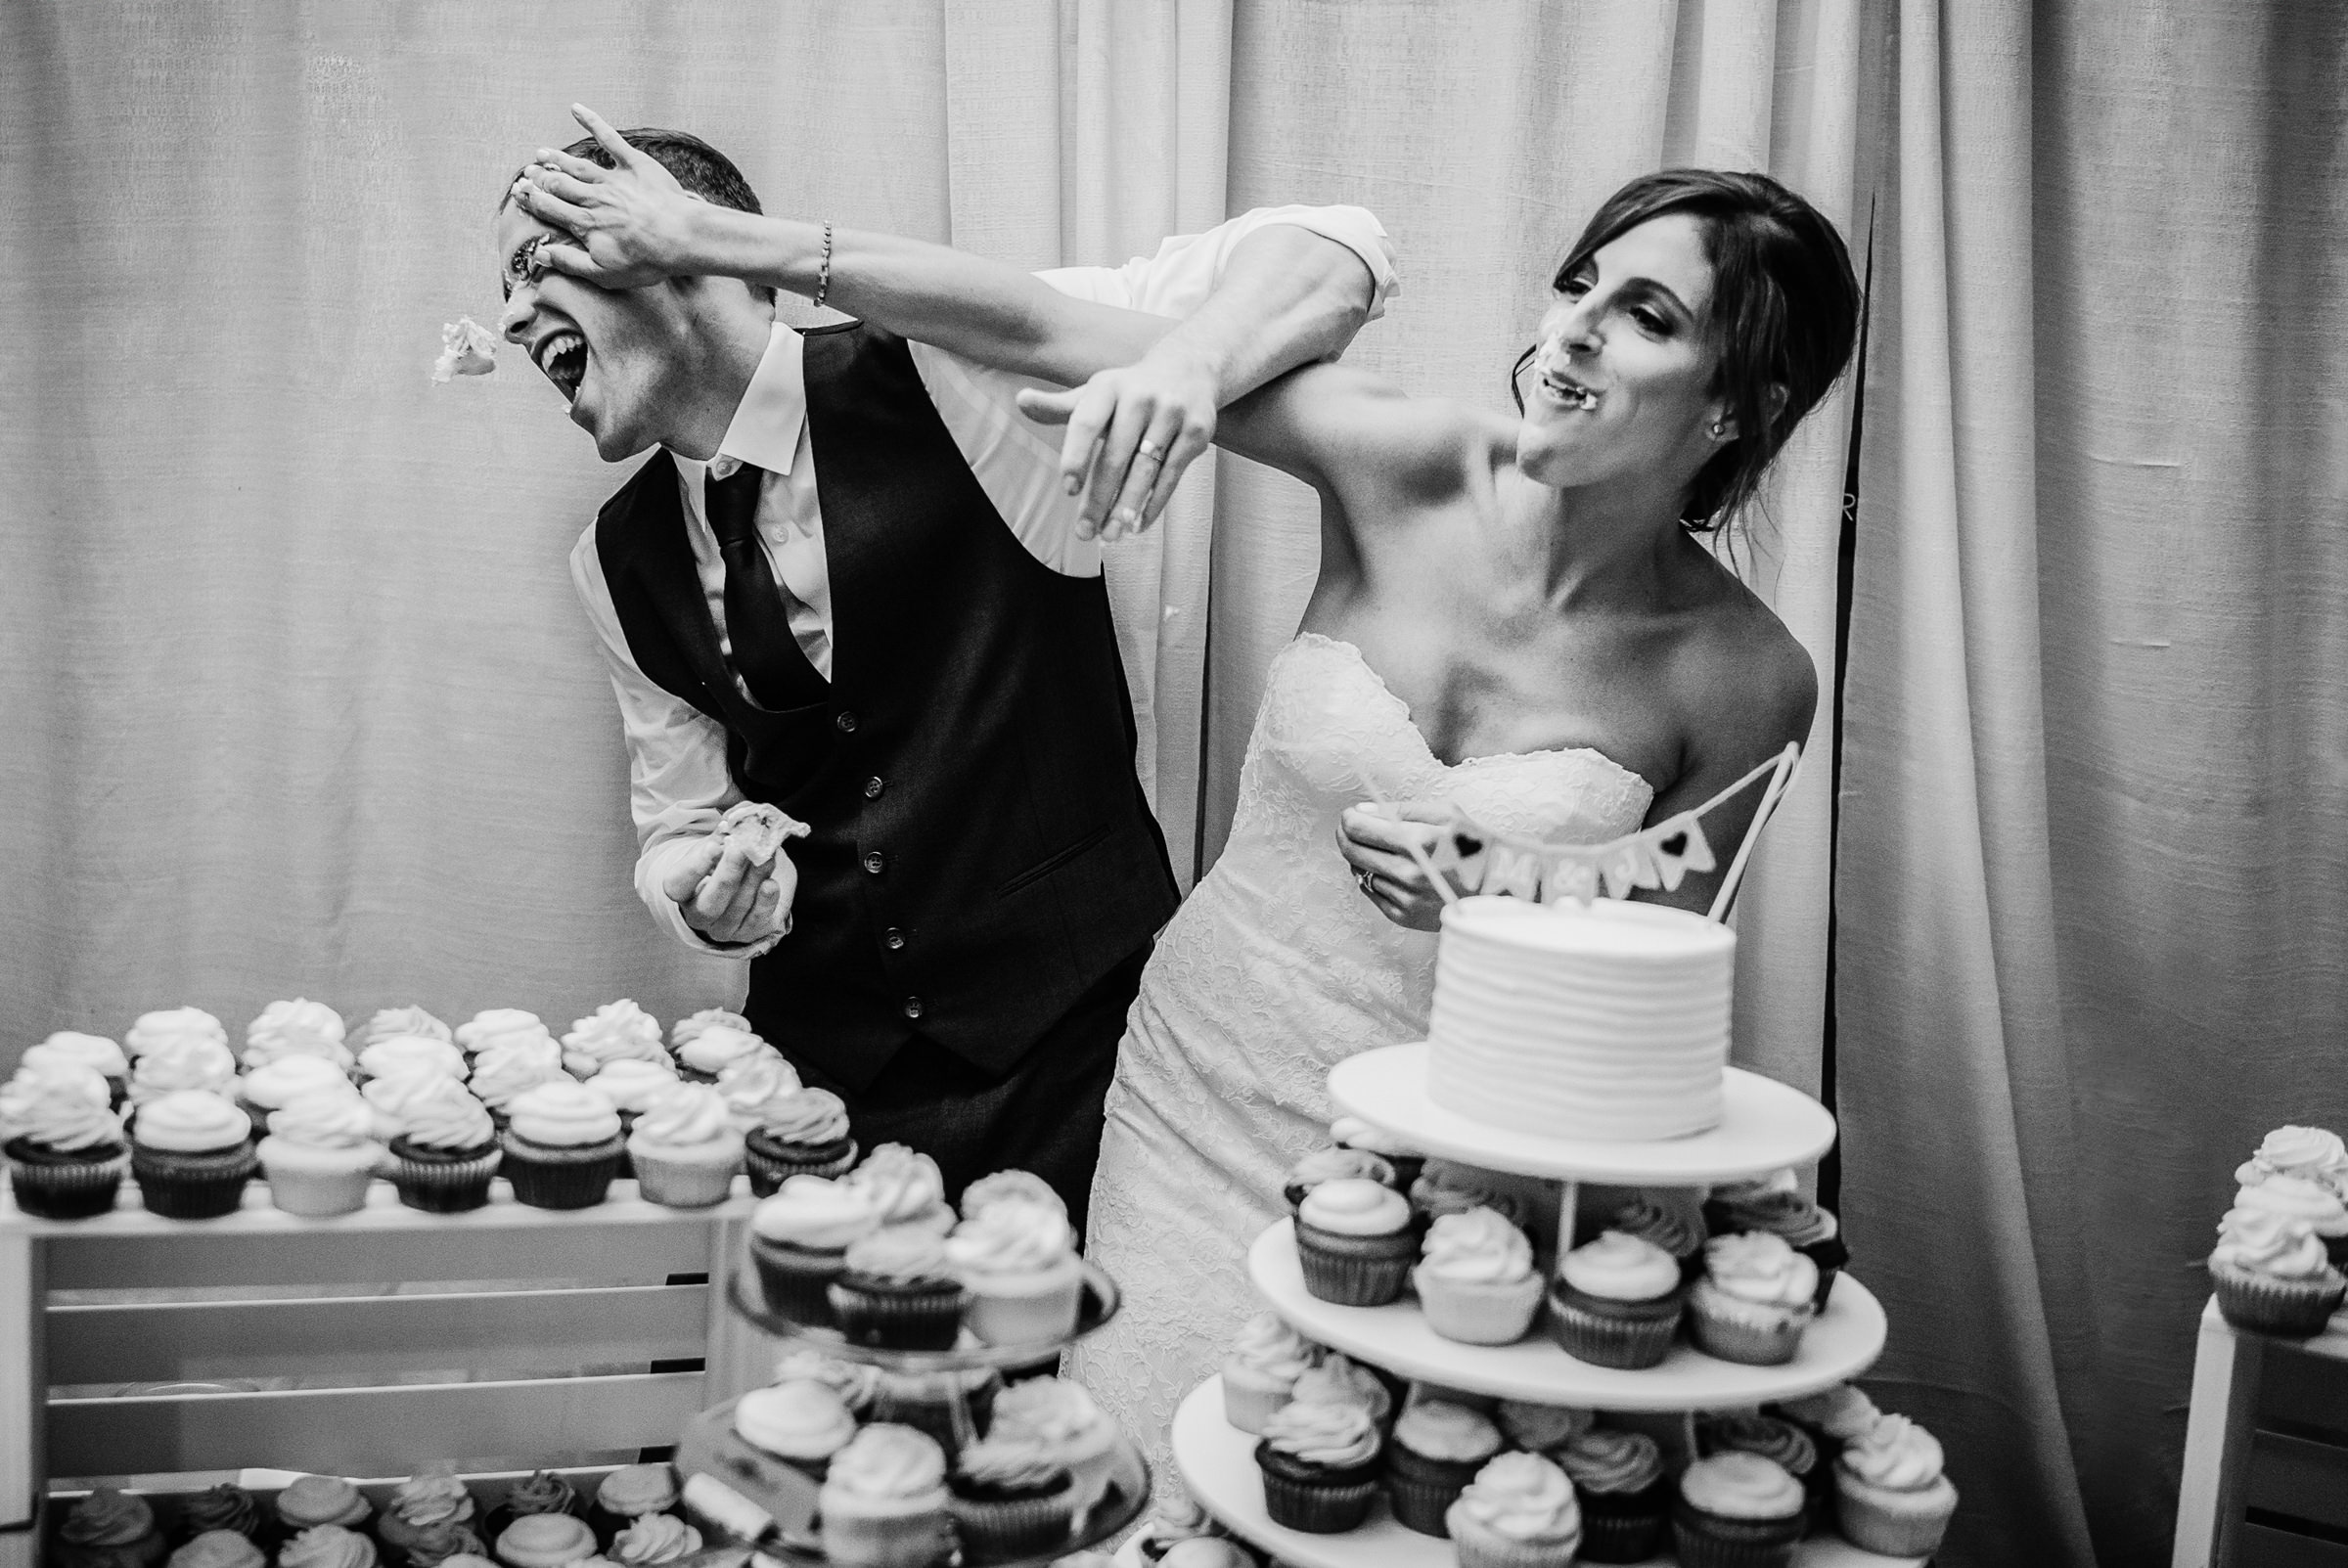 Couple plays with cupcakes - photo by Sasha Reiko Photography